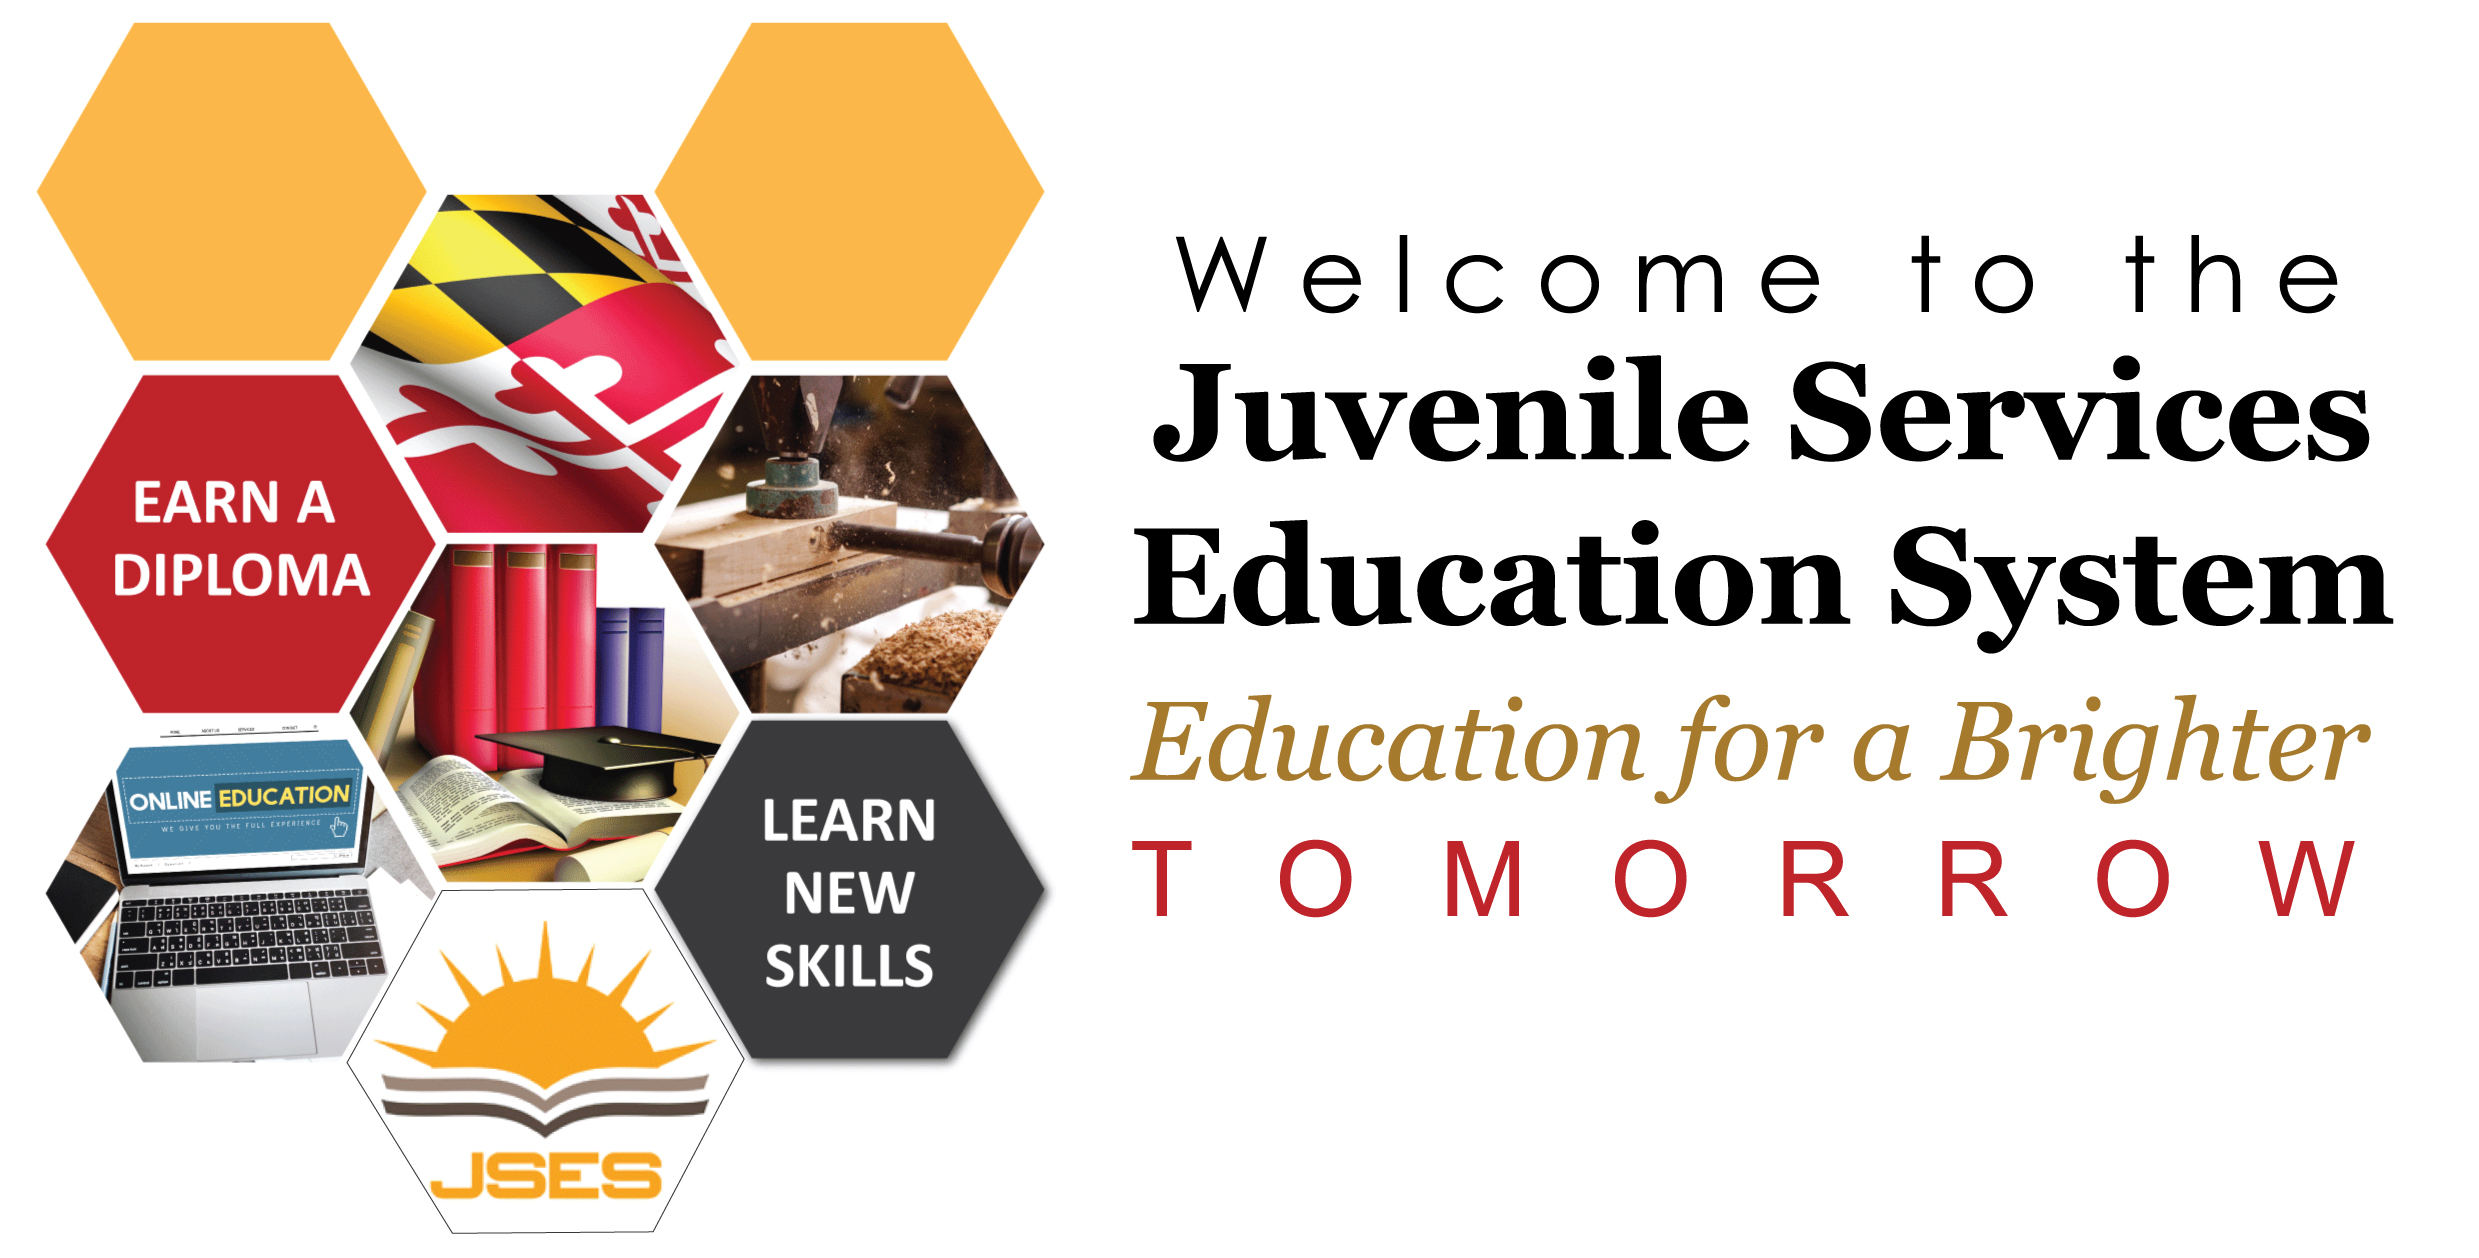 Welcome to the Juvenile Services Education System Education for a Brighter Tomorrow